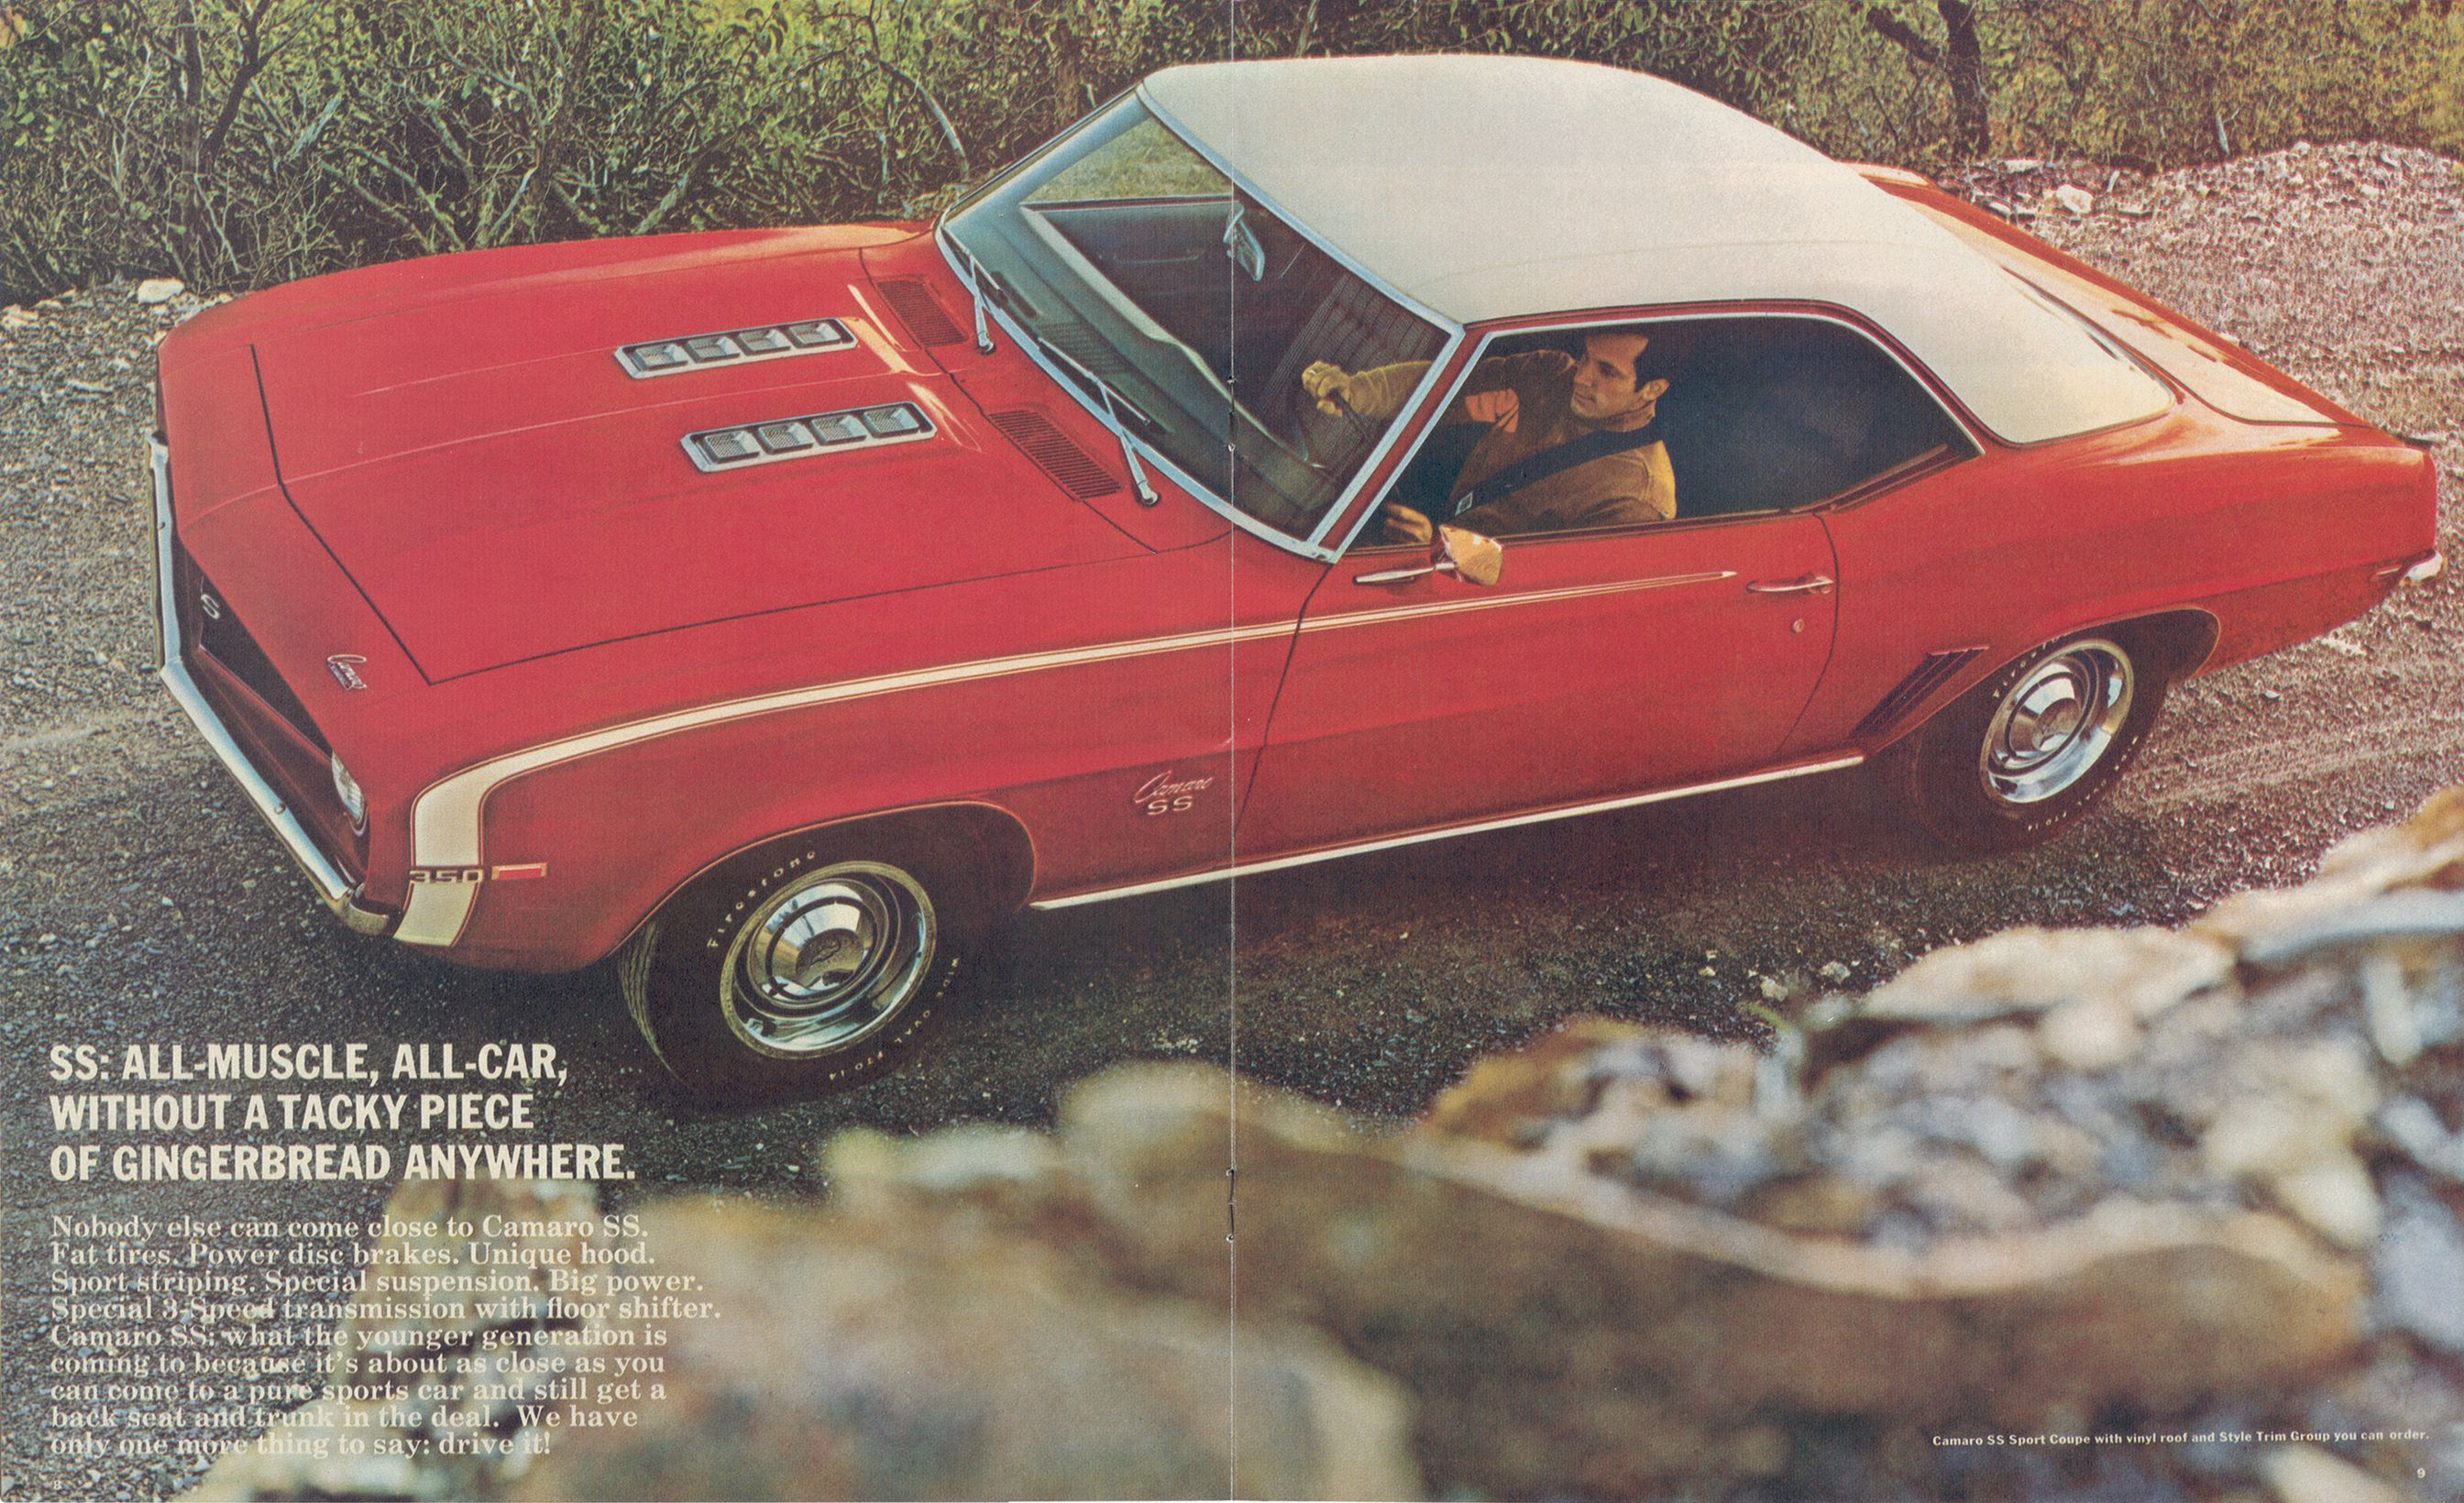 1969 Camaro SS brochure | 1969 Camaro | Pinterest | Camaro SS and Cars